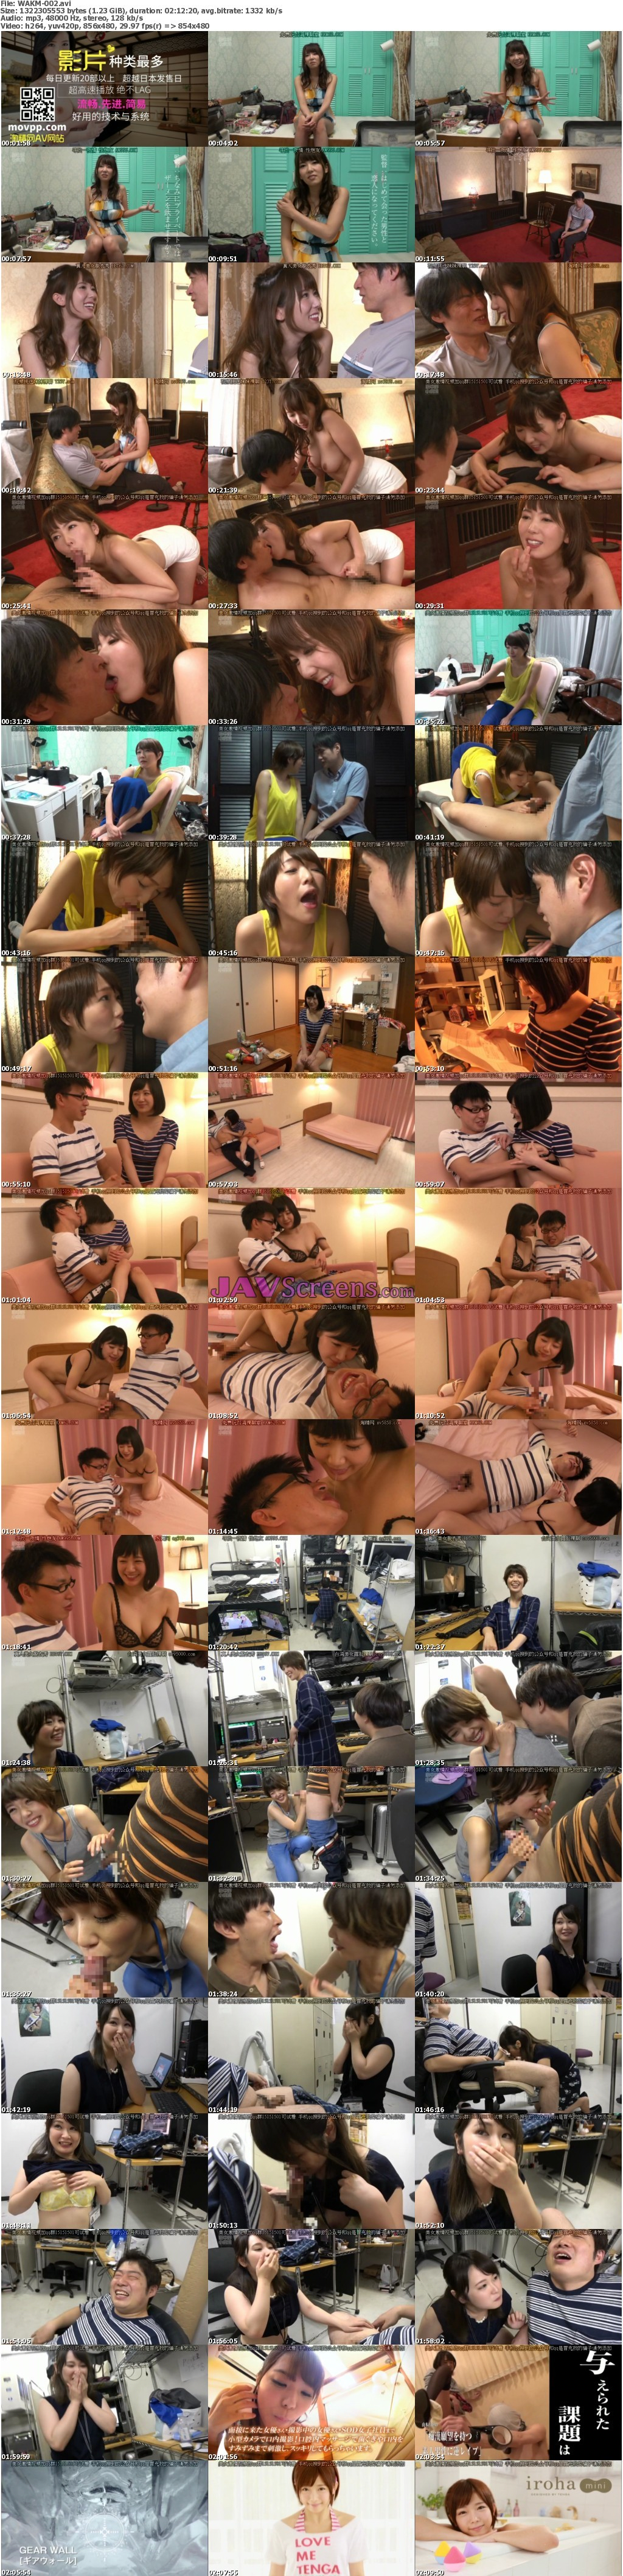 WAKM-002.jpg - JAV Screenshot